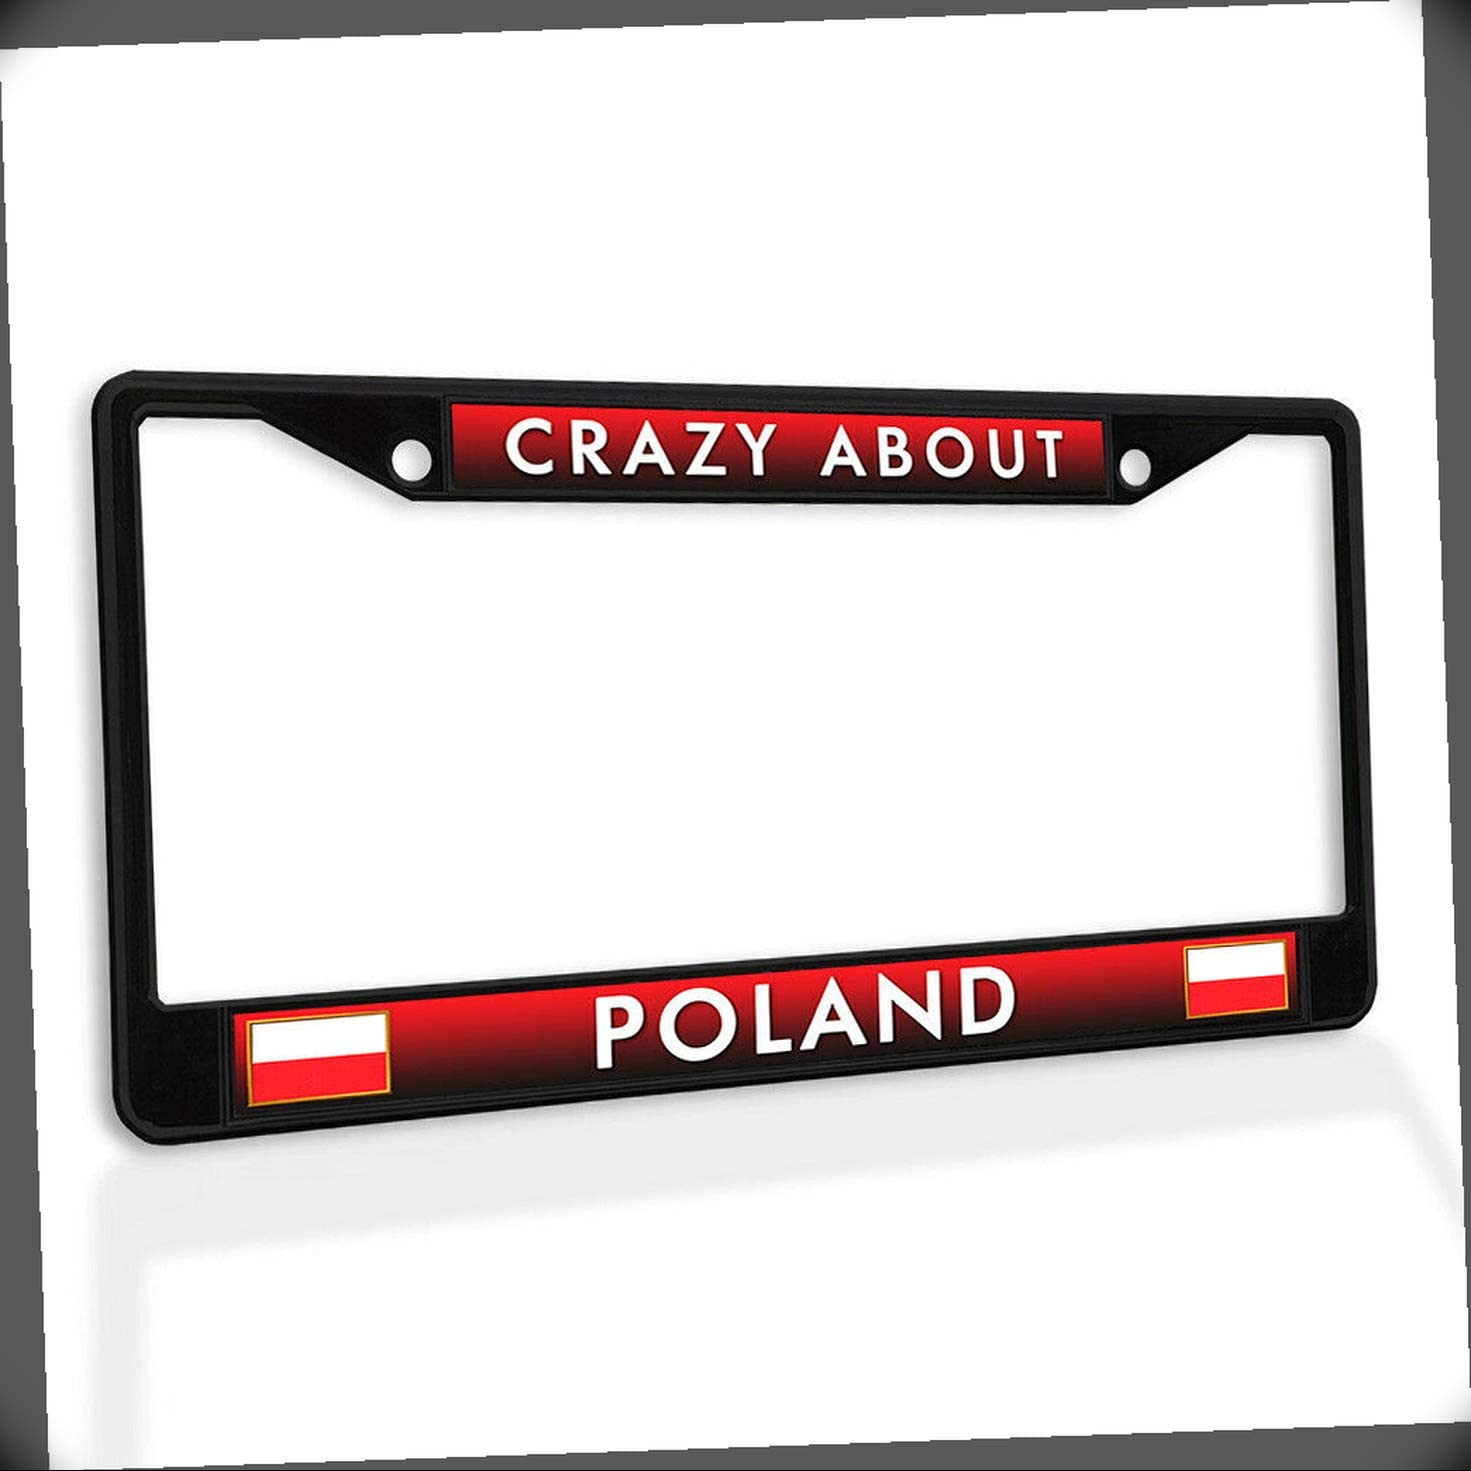 High quality new New License Plate Frame Crazy About Metal Insert Fram Car Poland Tucson Mall